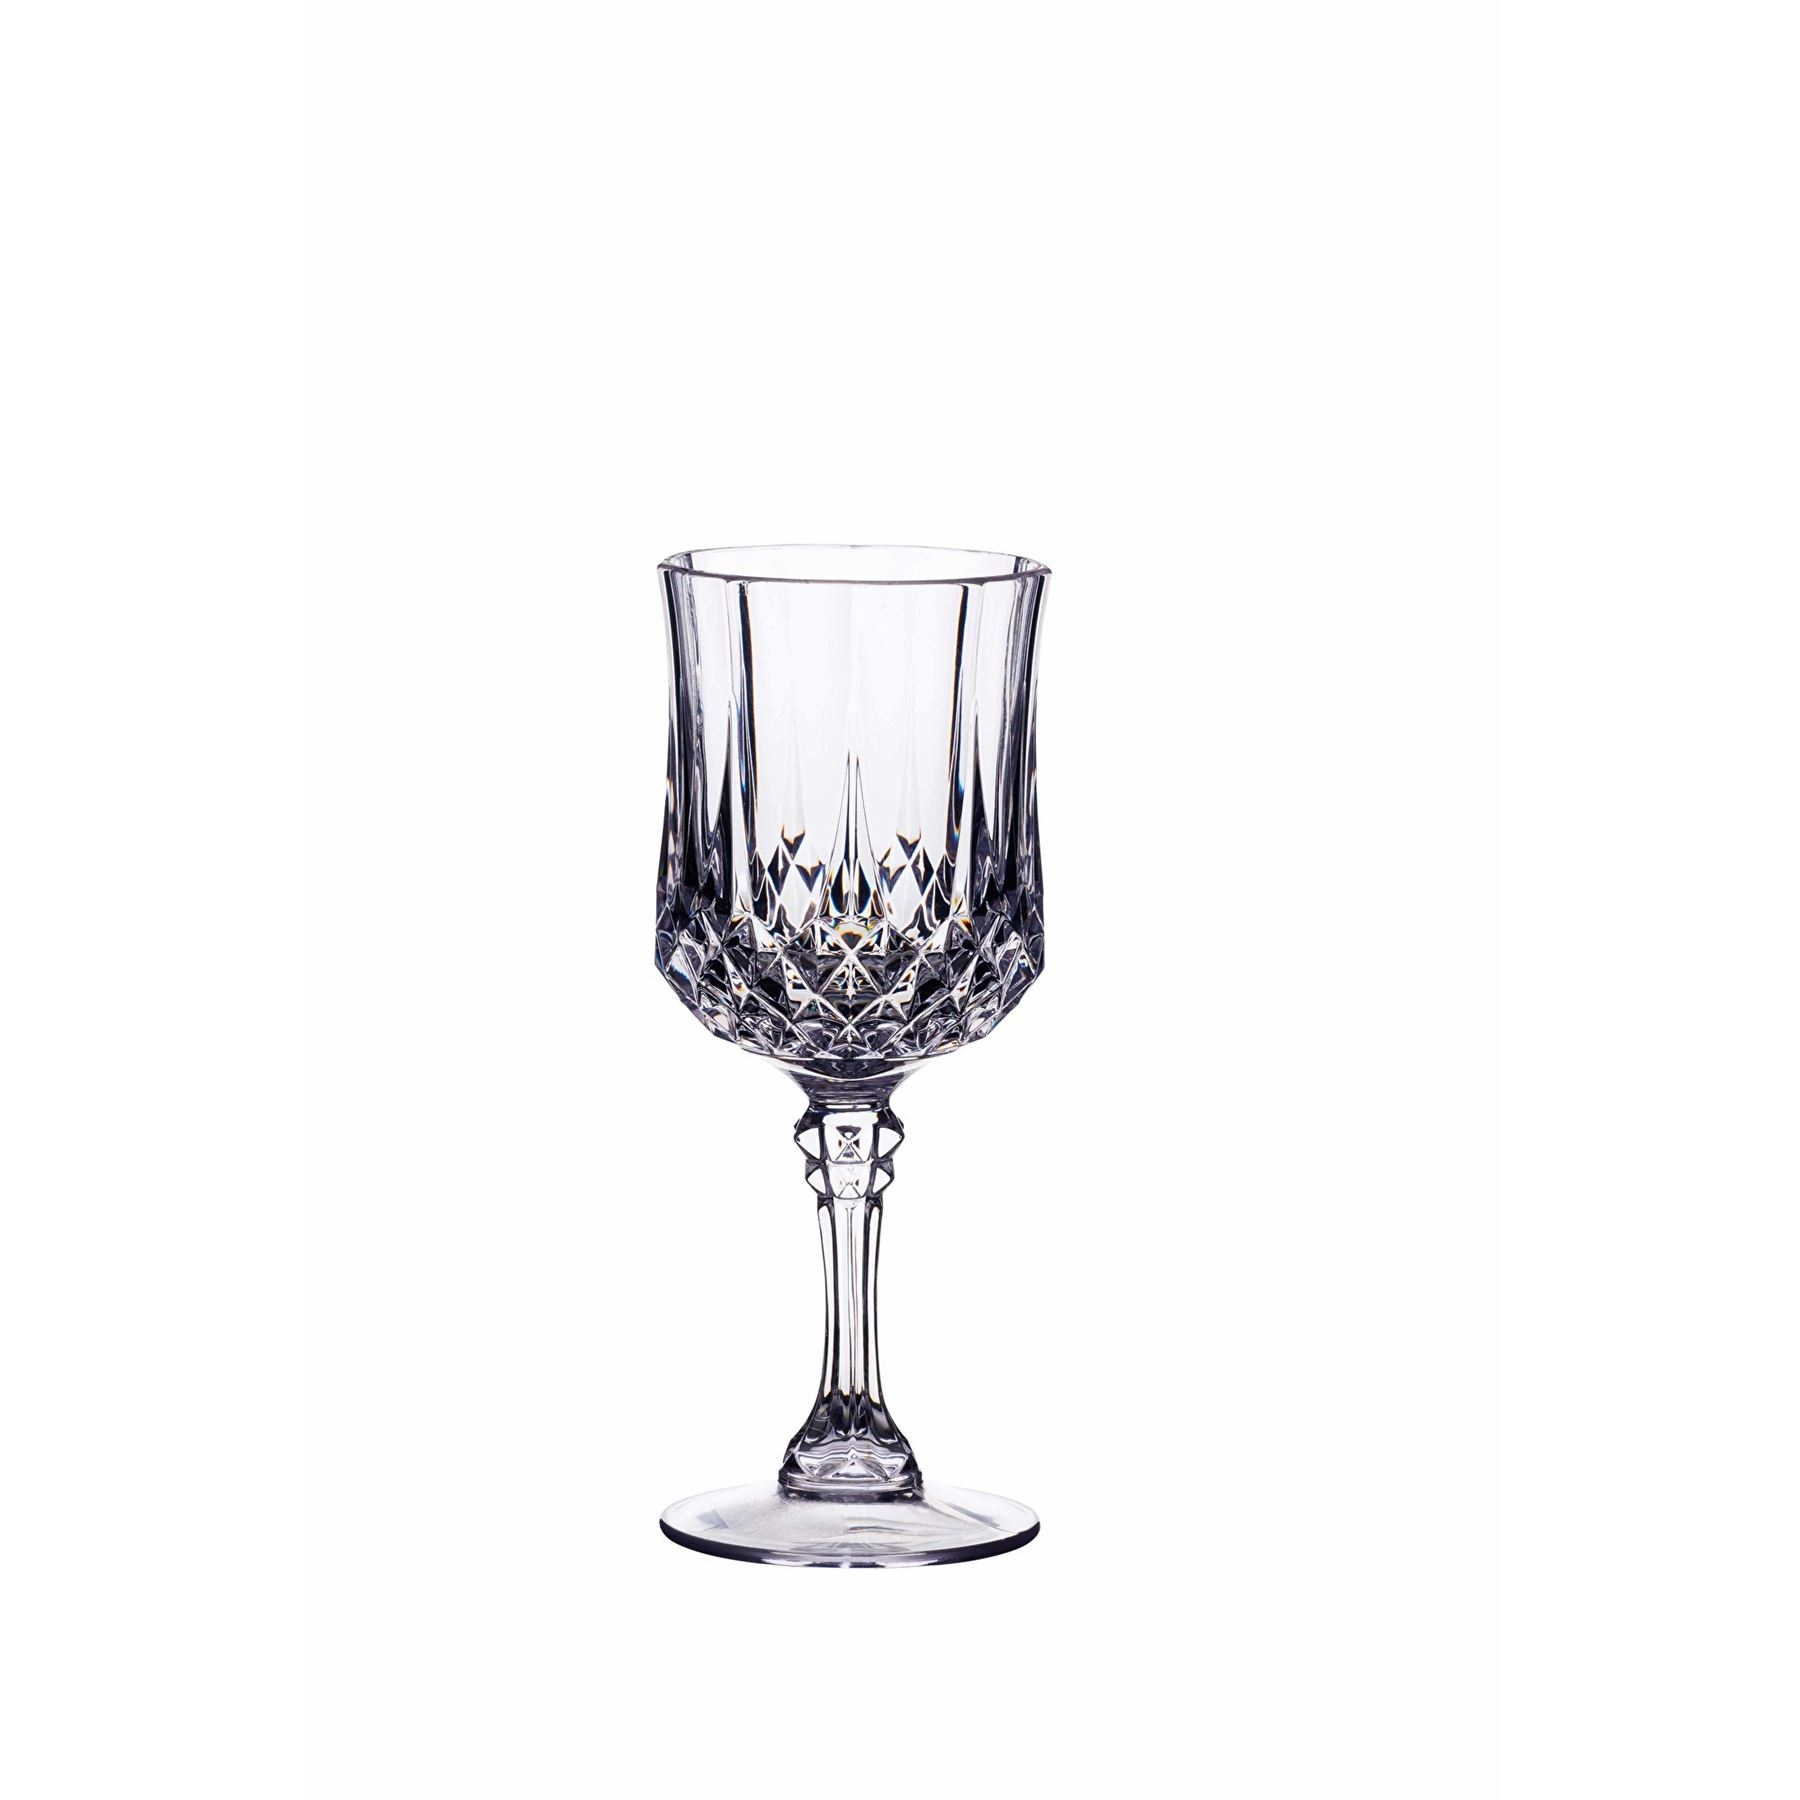 Bicchieri Long Drink Details About Kitchen Craft Bar Craft Cristallo Effetto Acrilico Plastica 200ml Vino Bicchiere